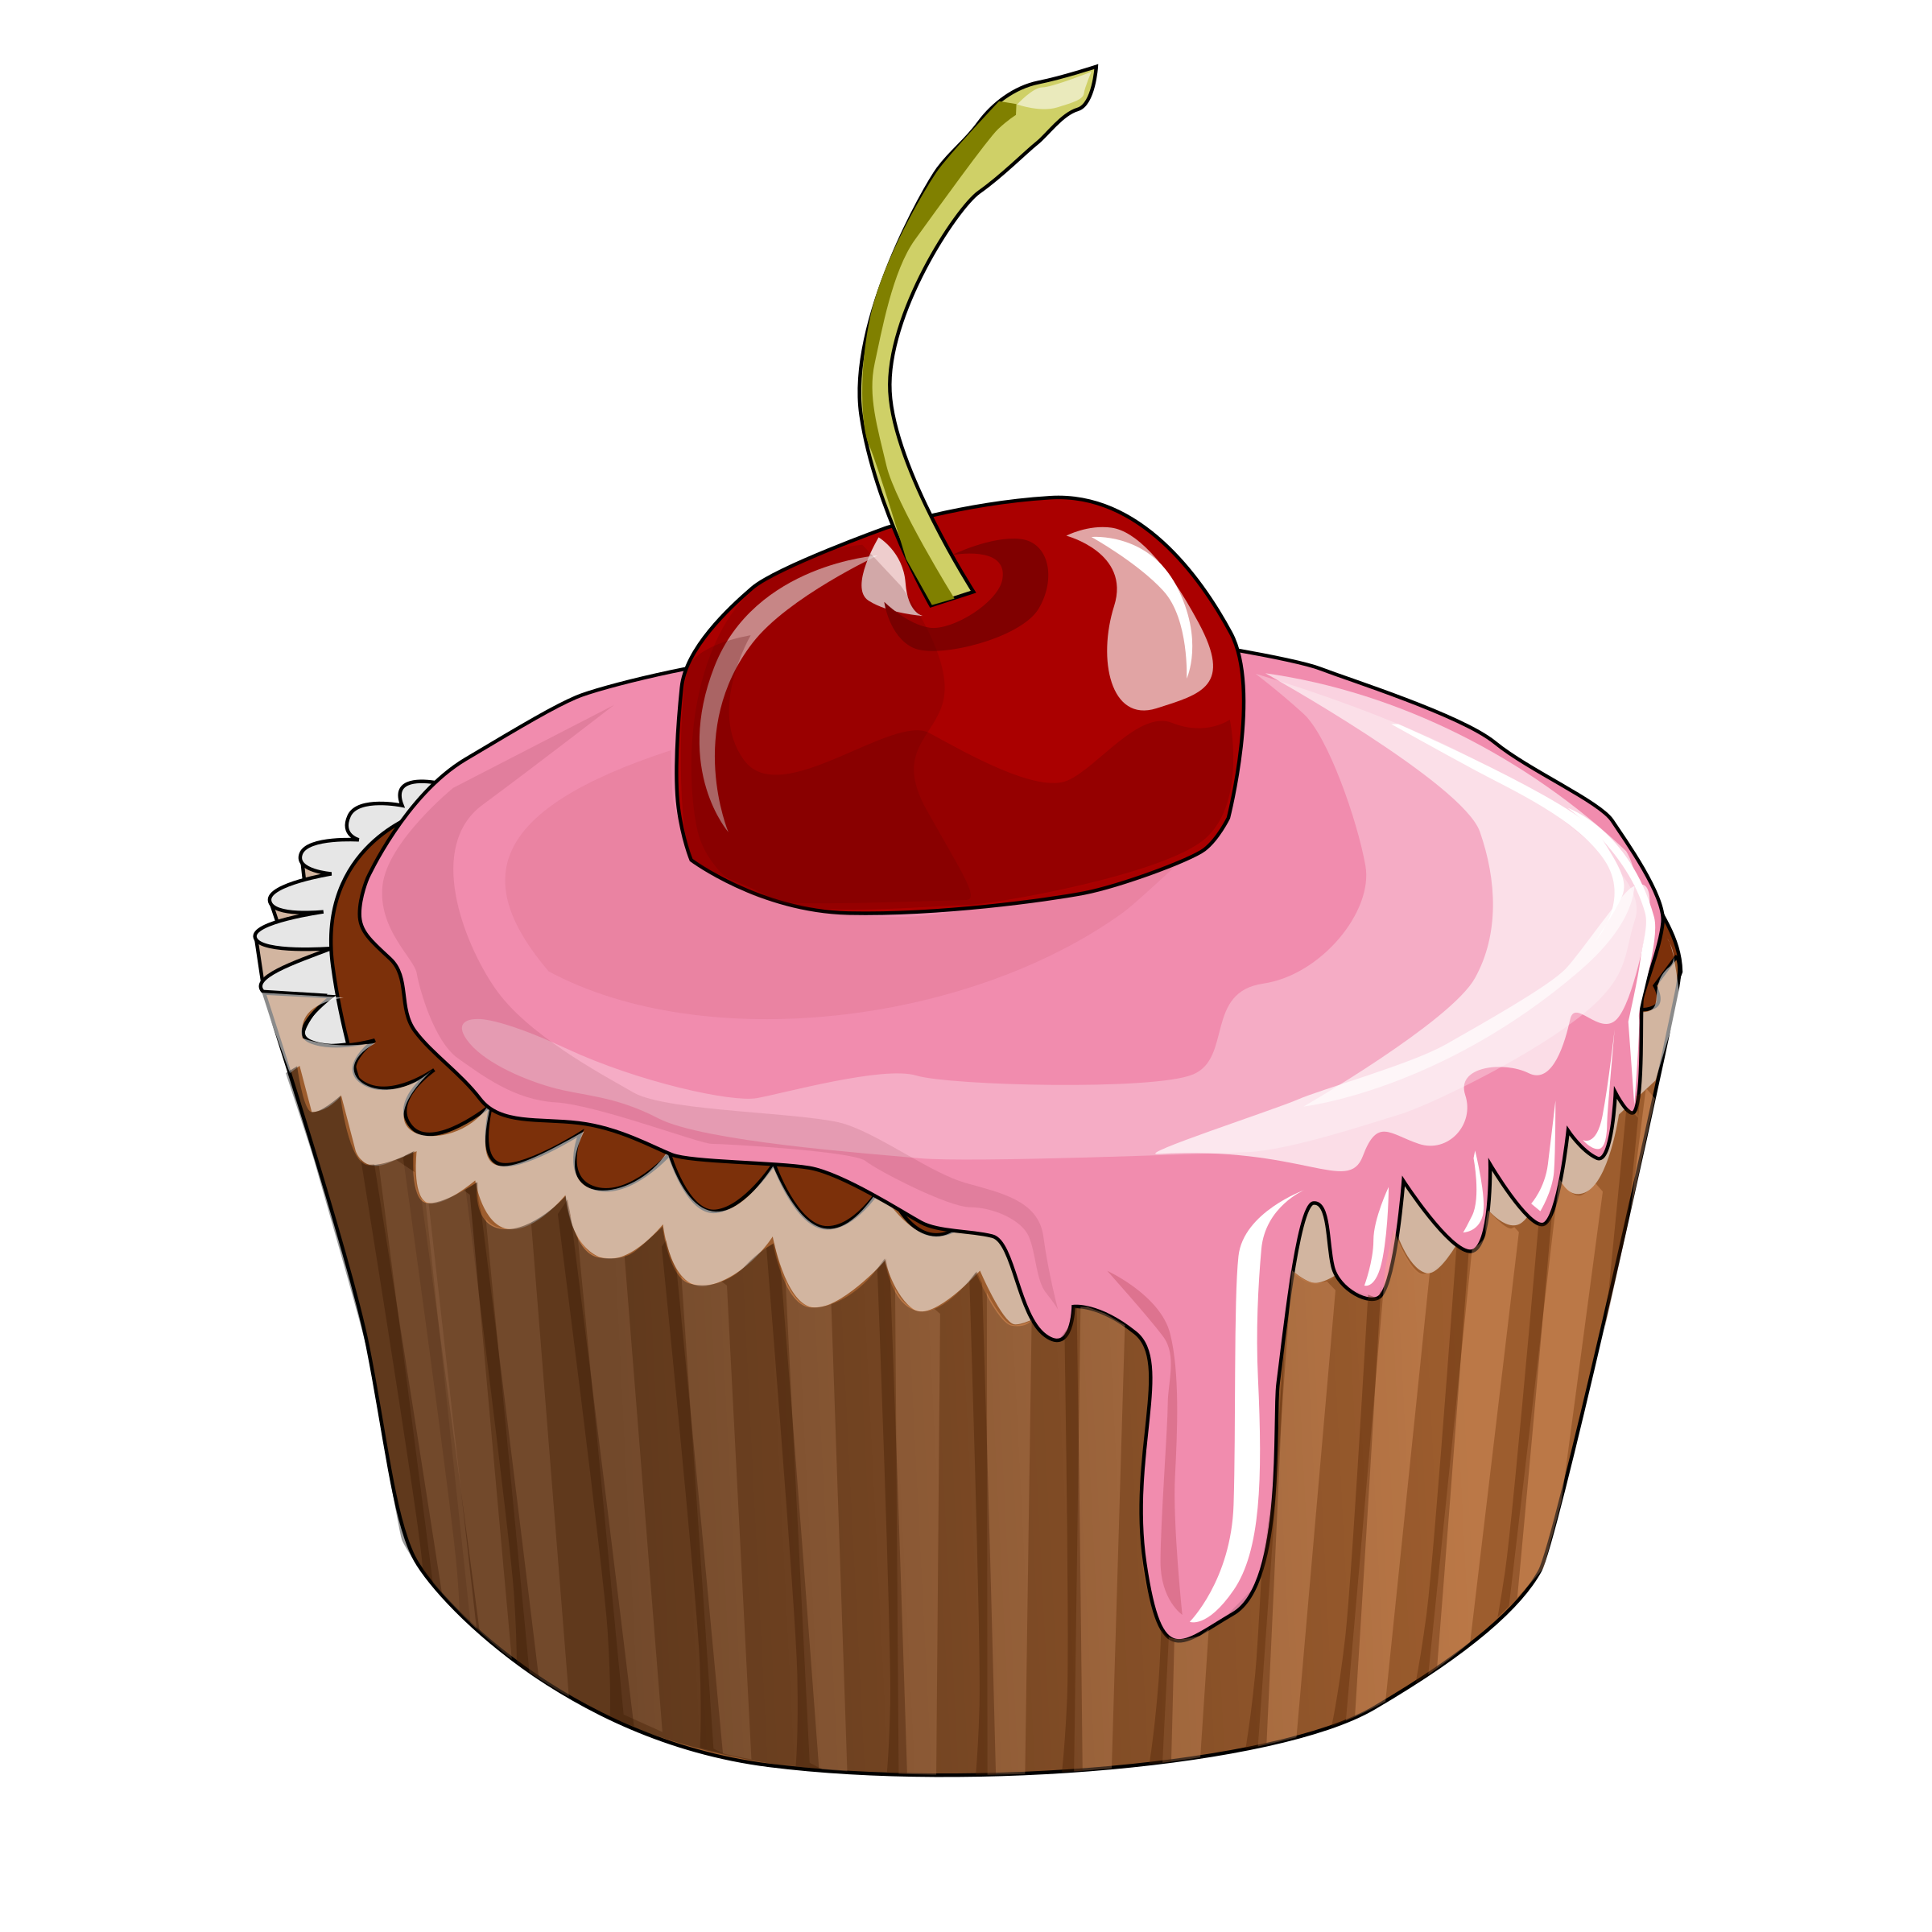 Cherry Cupcake Vector Clipart image - Free stock photo - Public ... image library